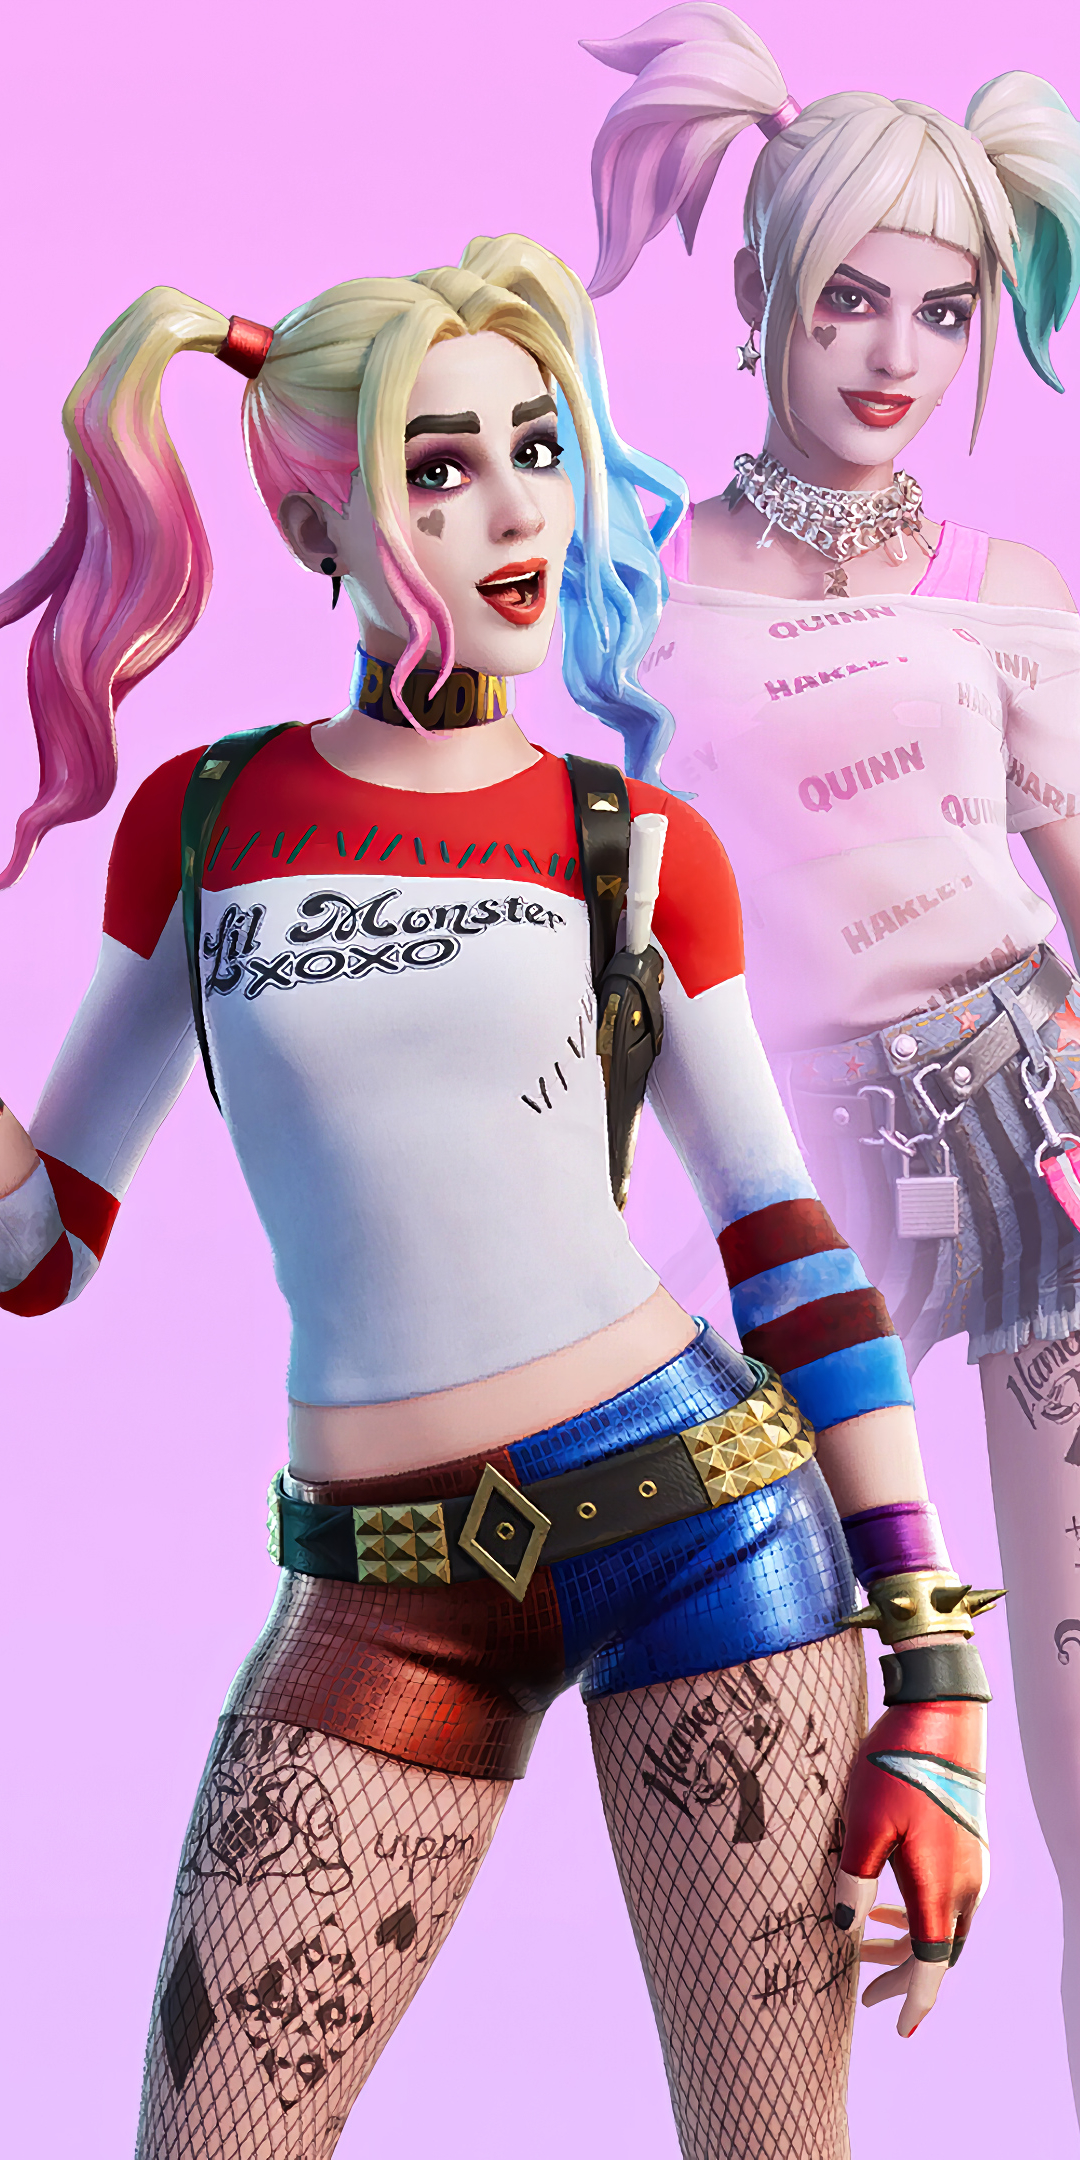 1080x2160 4k Harley Quinn Fortnite Skin Outfit One Plus 5t Honor 7x Honor View 10 Lg Q6 Wallpaper Hd Games 4k Wallpapers Images Photos And Background